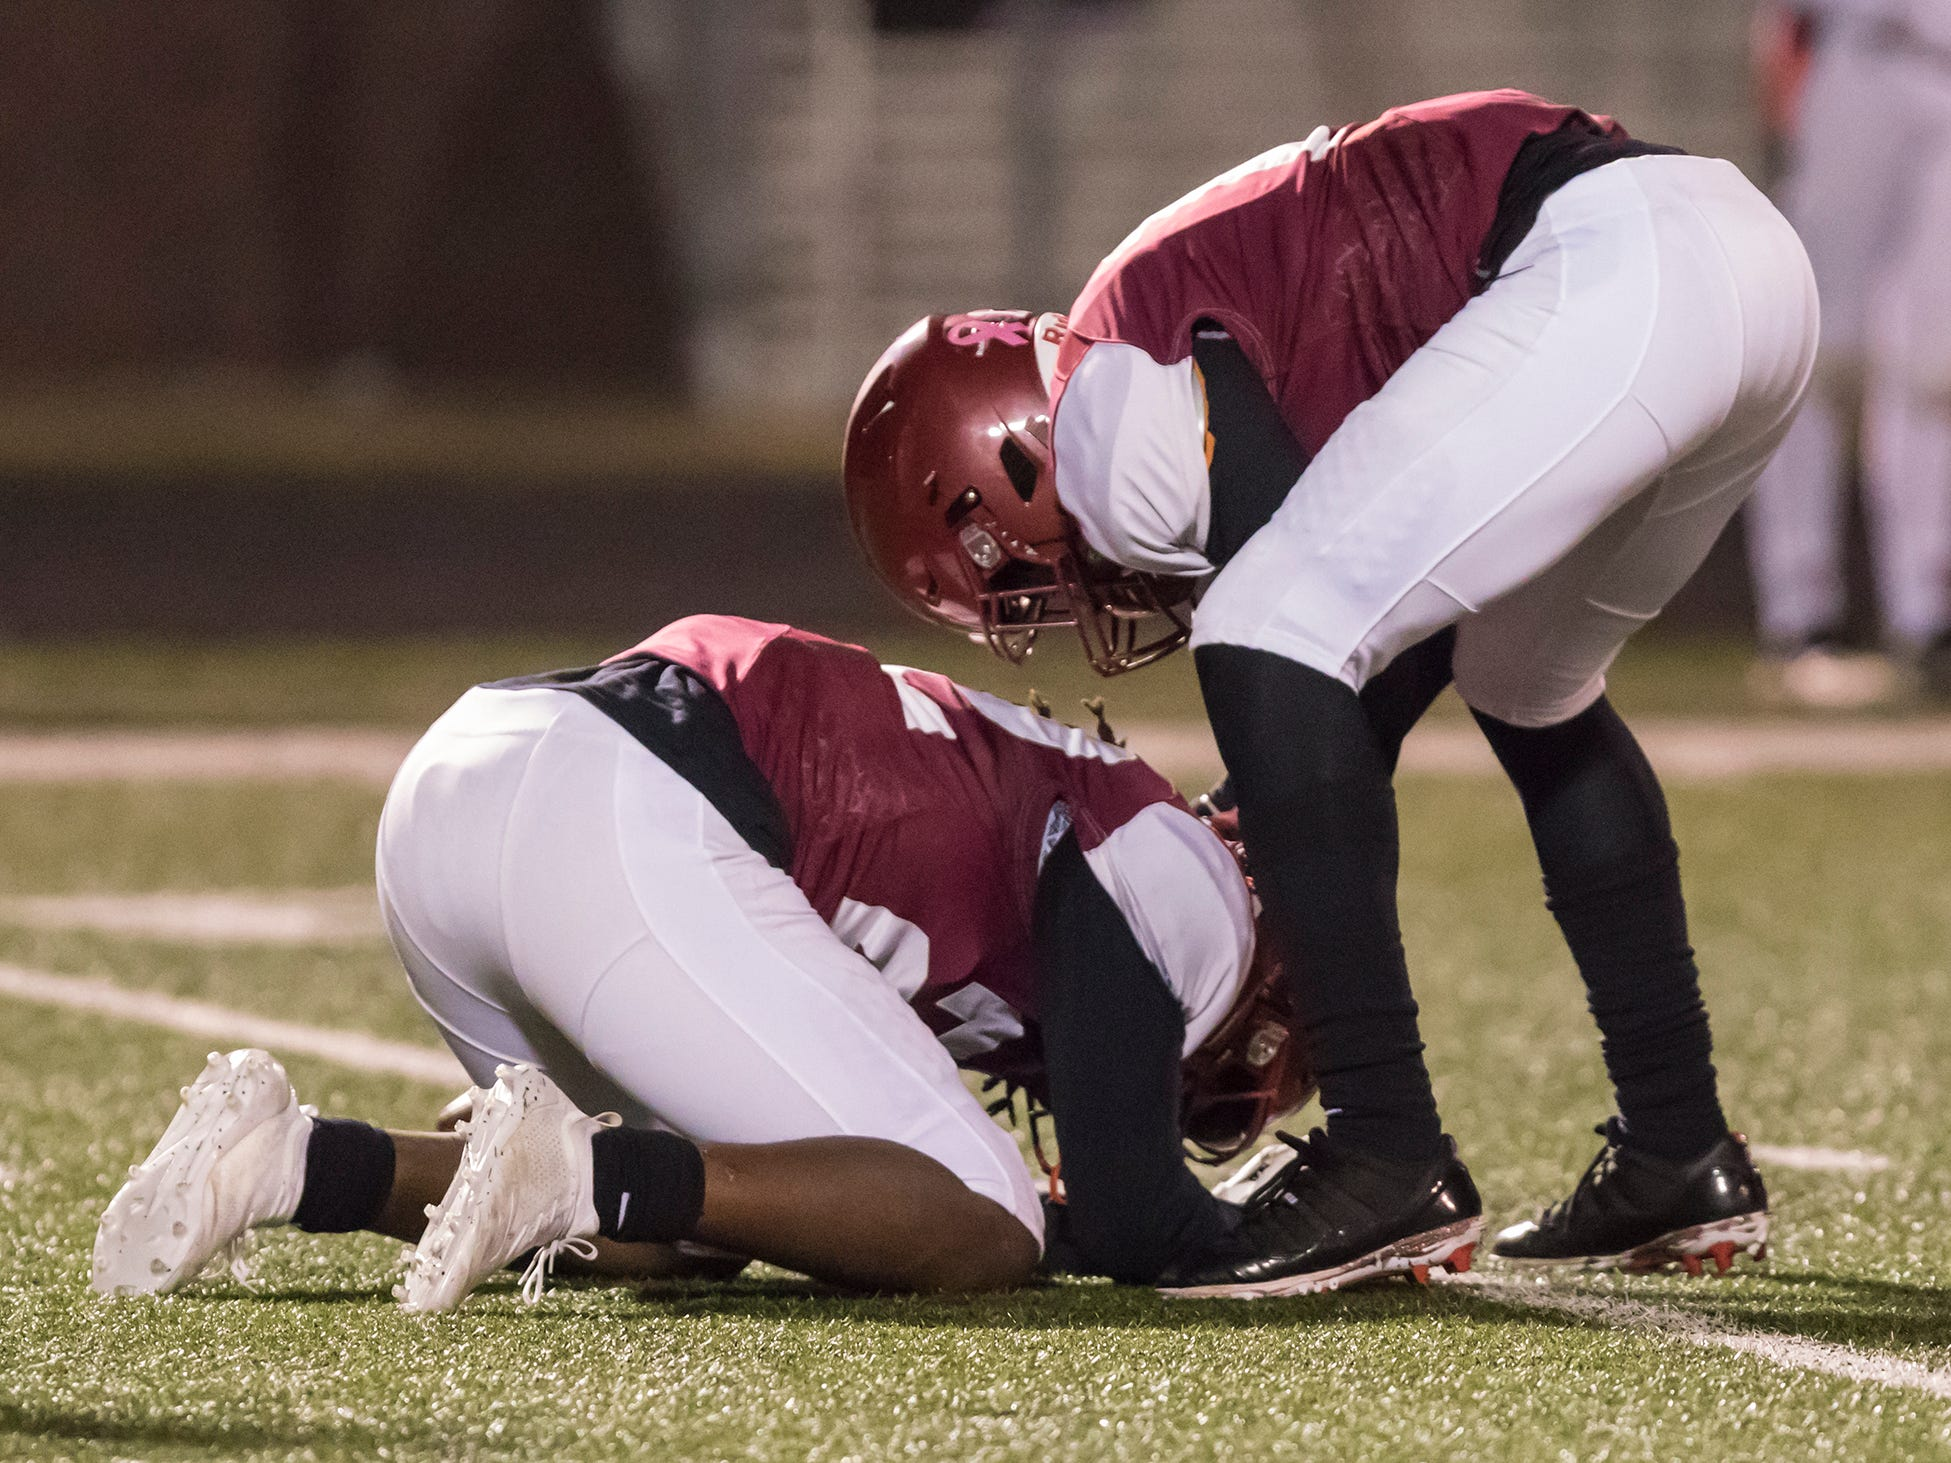 Ouachita Parish High School defeats Parkway 37-35 in the first game of the playoffs at OPHS in Monroe, La. on Nov. 9.